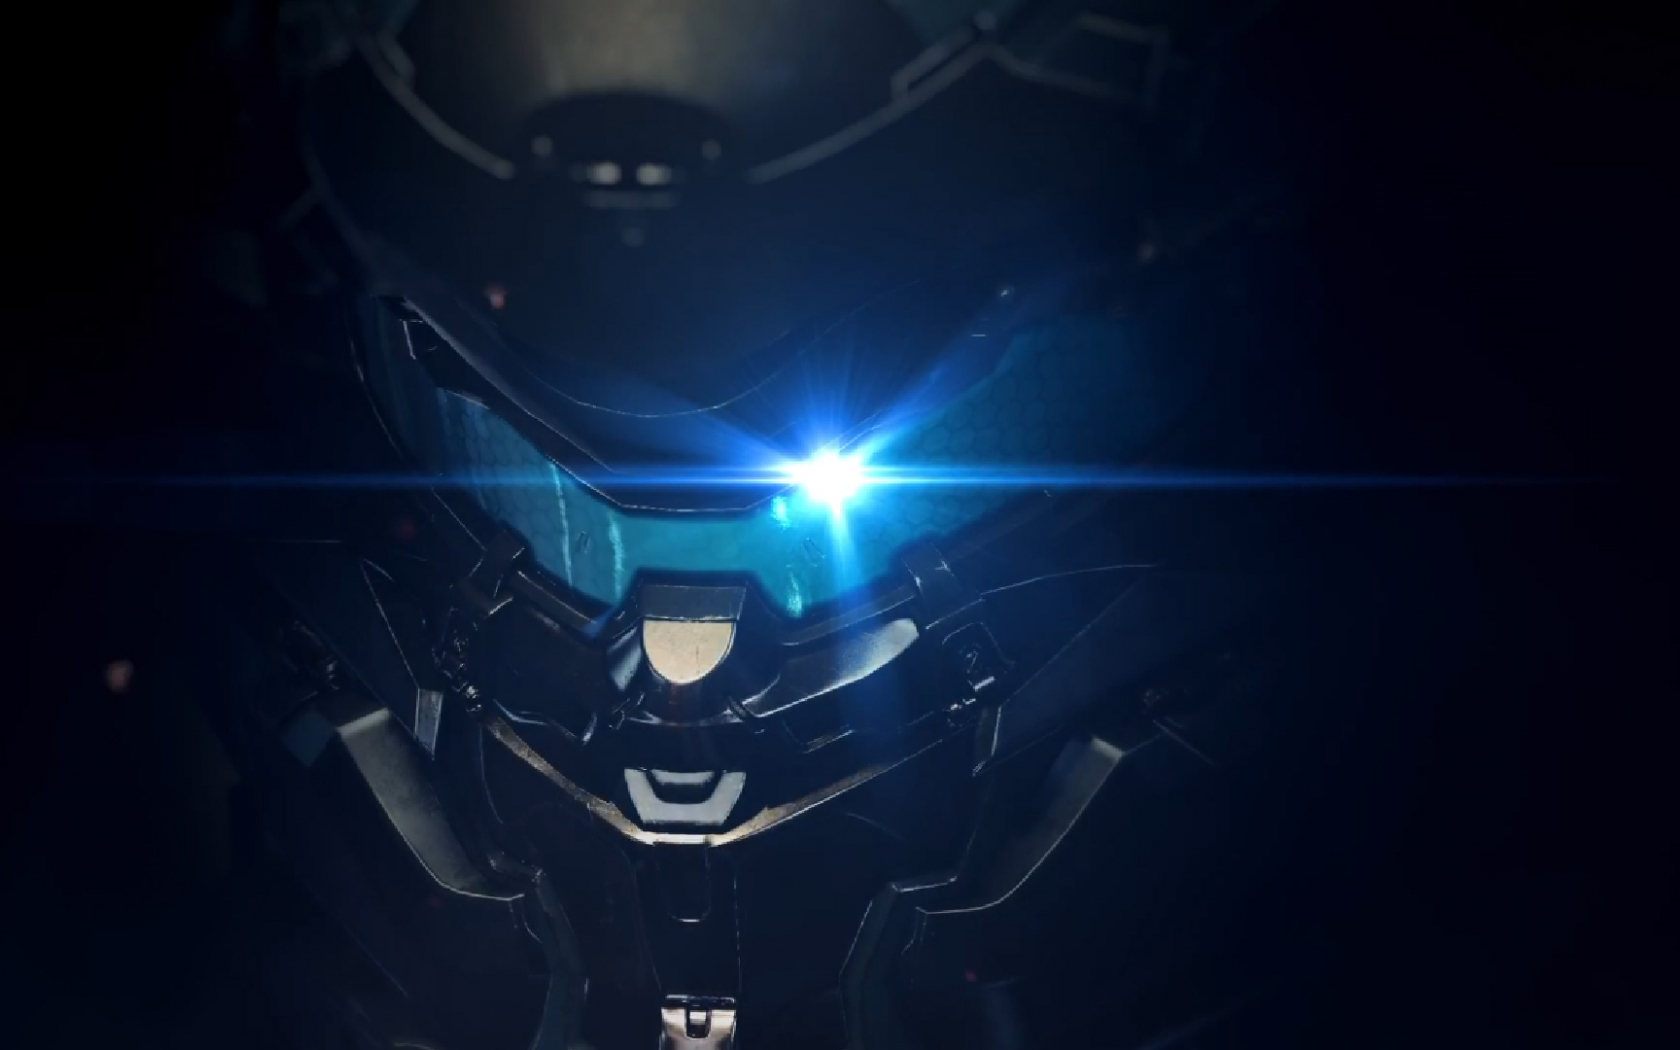 Free Download Animated Wallpaper For Iphone 5 Halo 5 Guardians